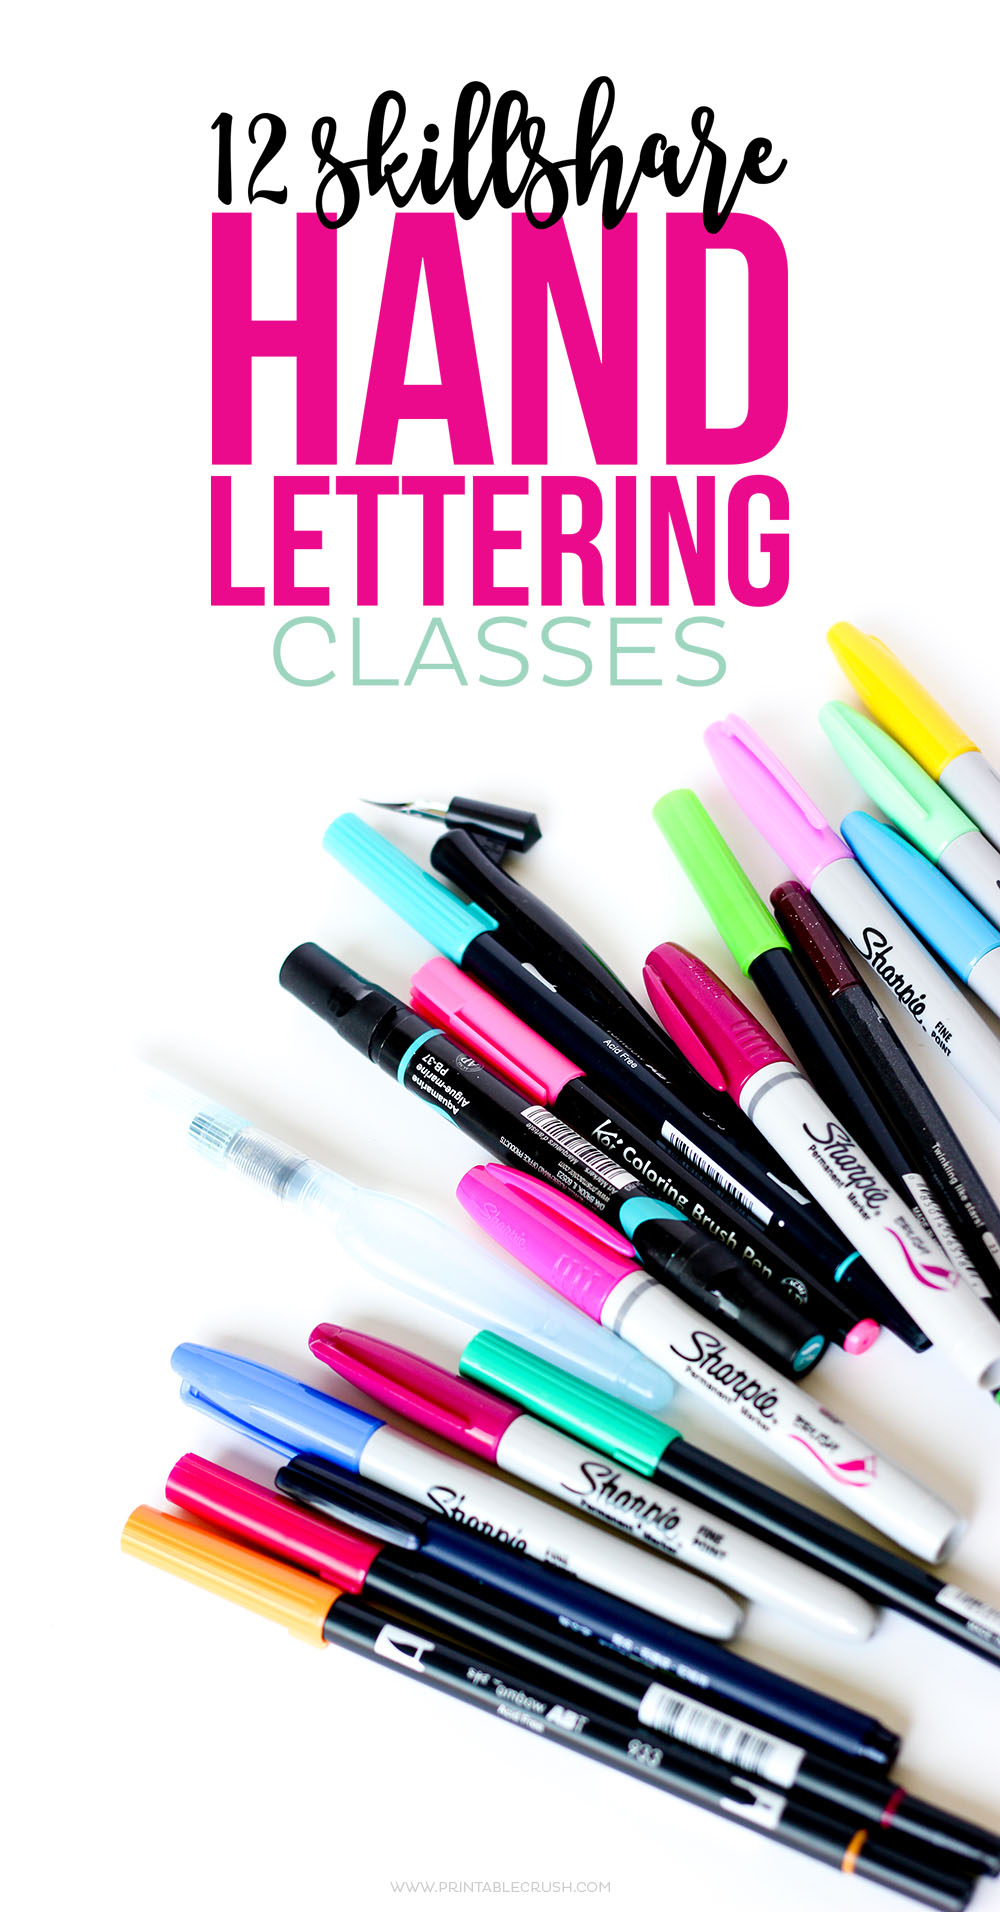 Whether you are new to lettering or need to brush up on some techniques, check out these 12 Skillshare Classes to Improve Hand Lettering Skills!